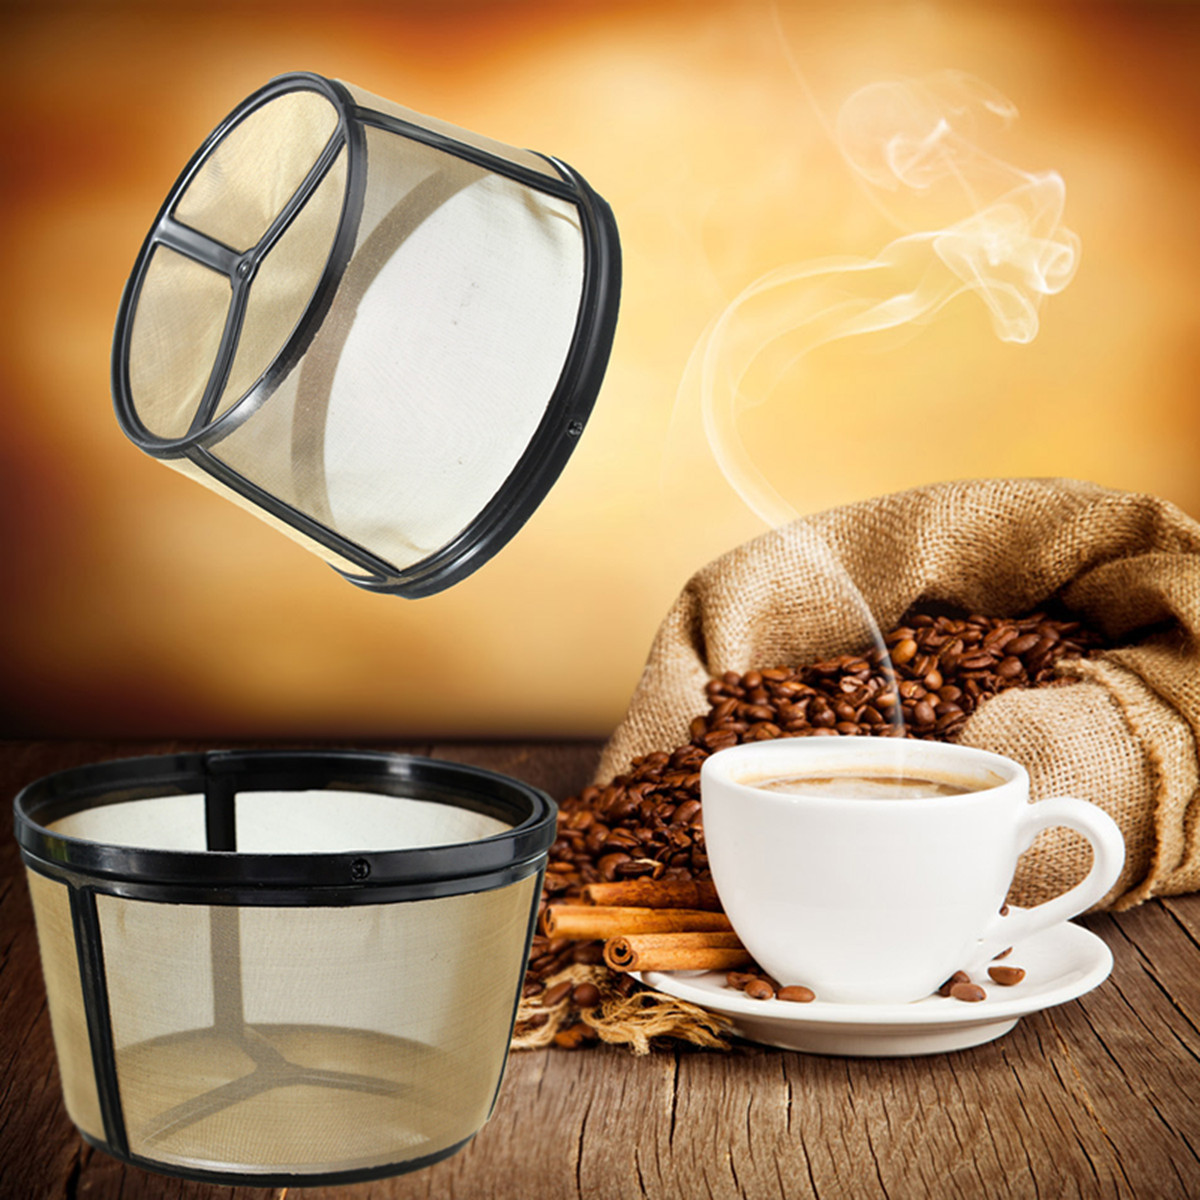 "Permanent Reusable Basket Coffee Filter Fits Coffee Makers 4.7x3.2x2.8"" (Top x Bottom x Height)"